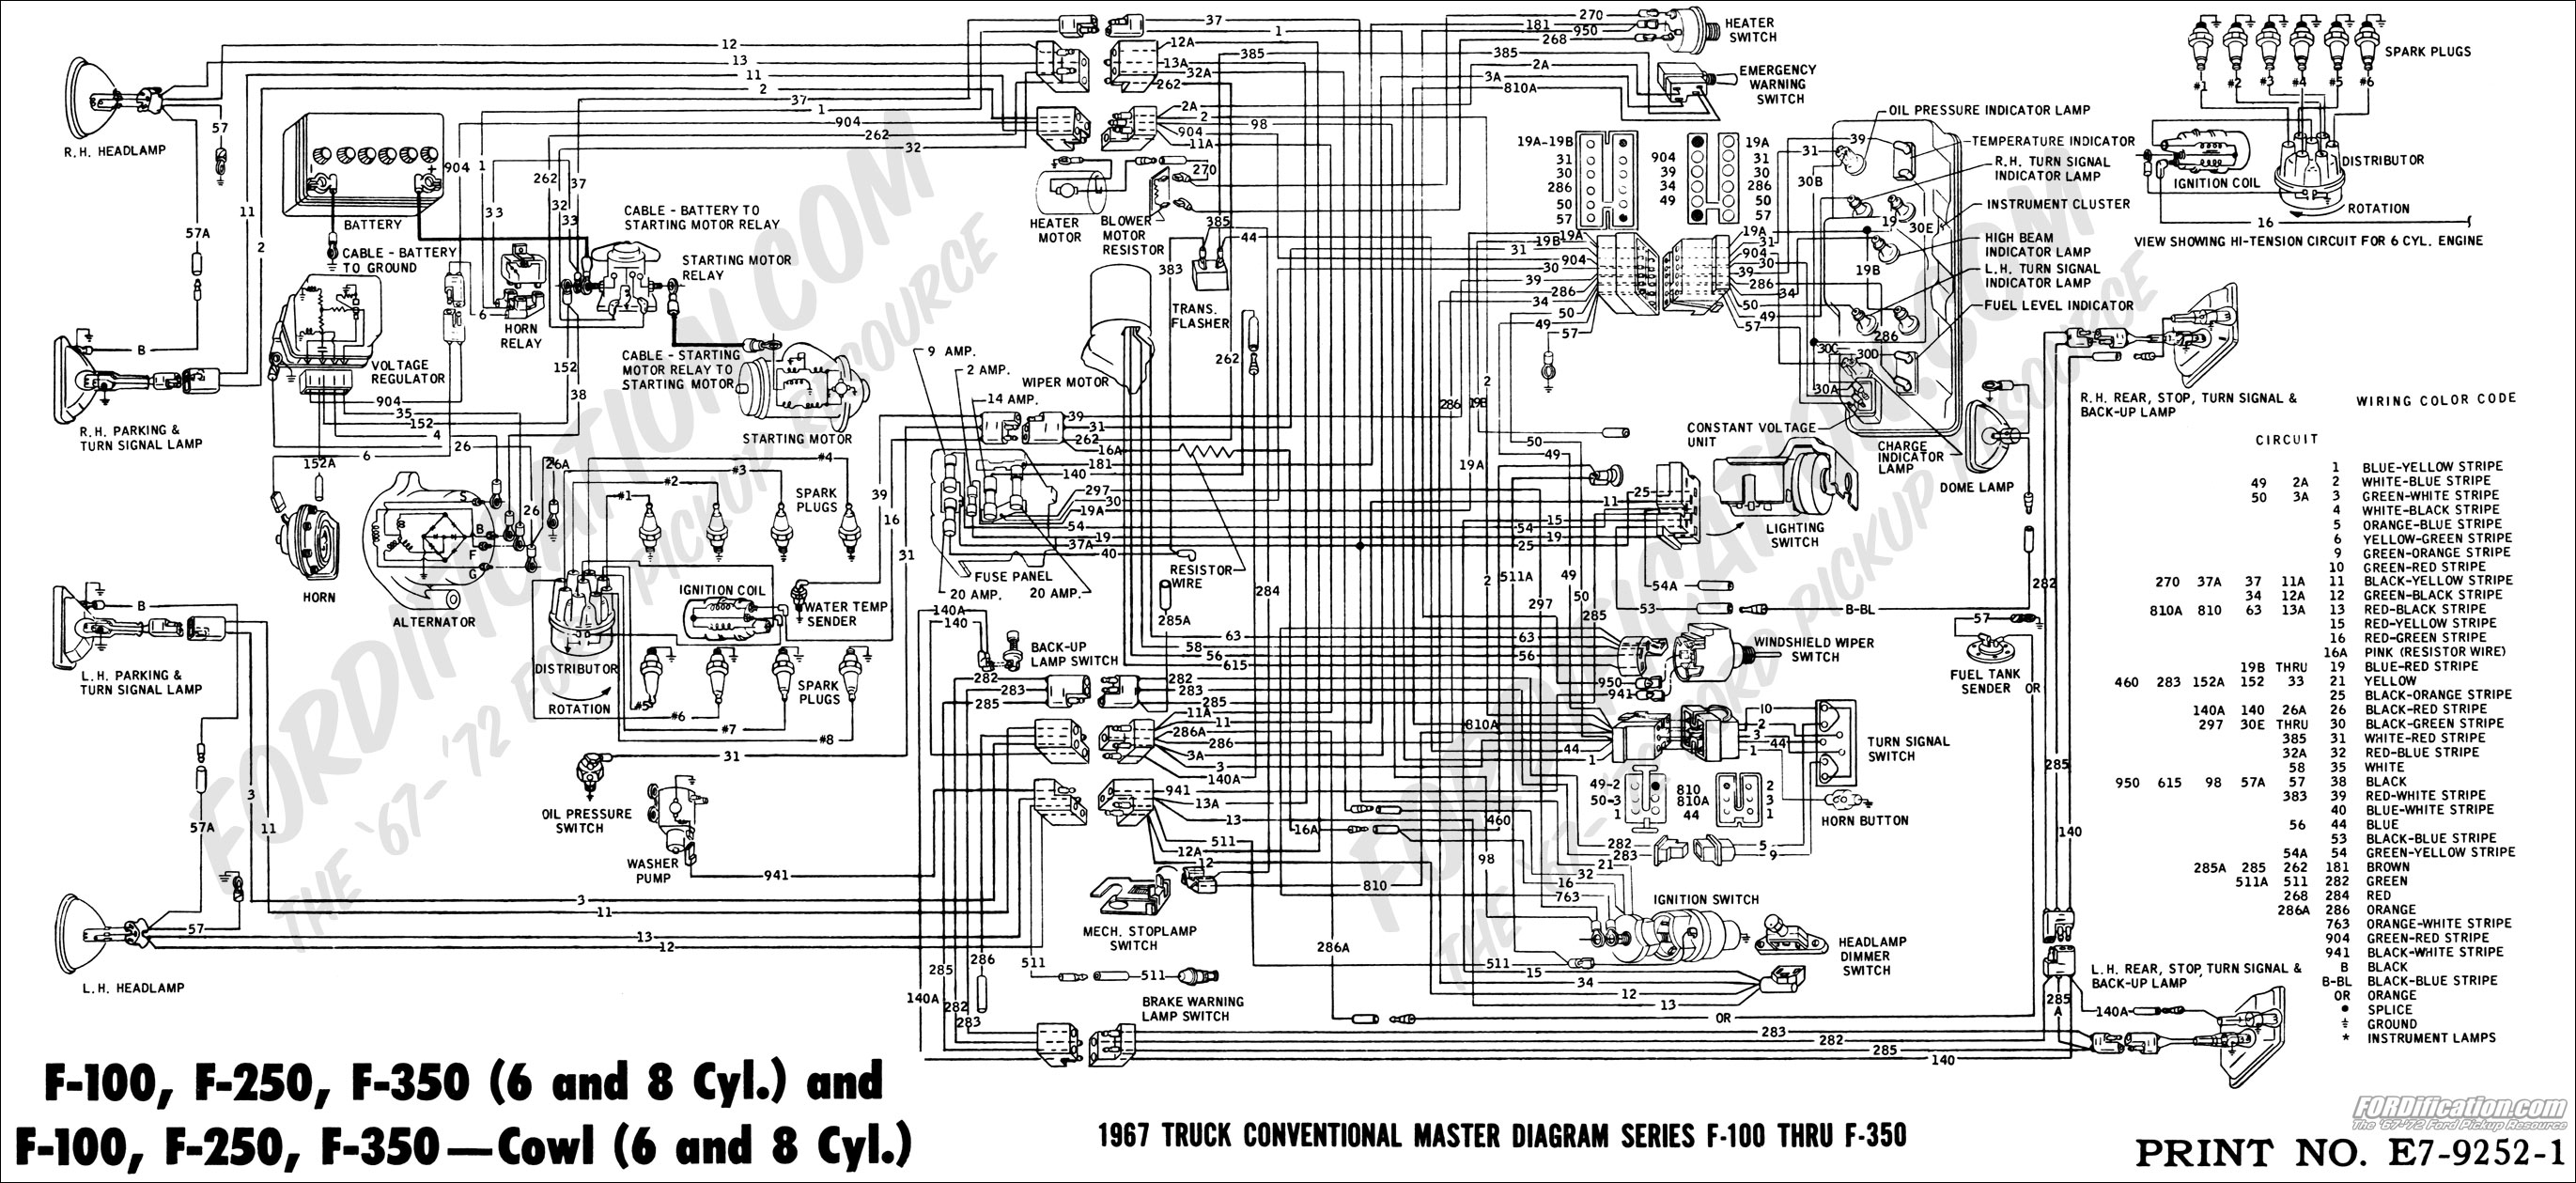 wiring diagram 89 f250 the wiring diagram 89 ford f 250 engine wire diagram 89 printable wiring wiring diagram